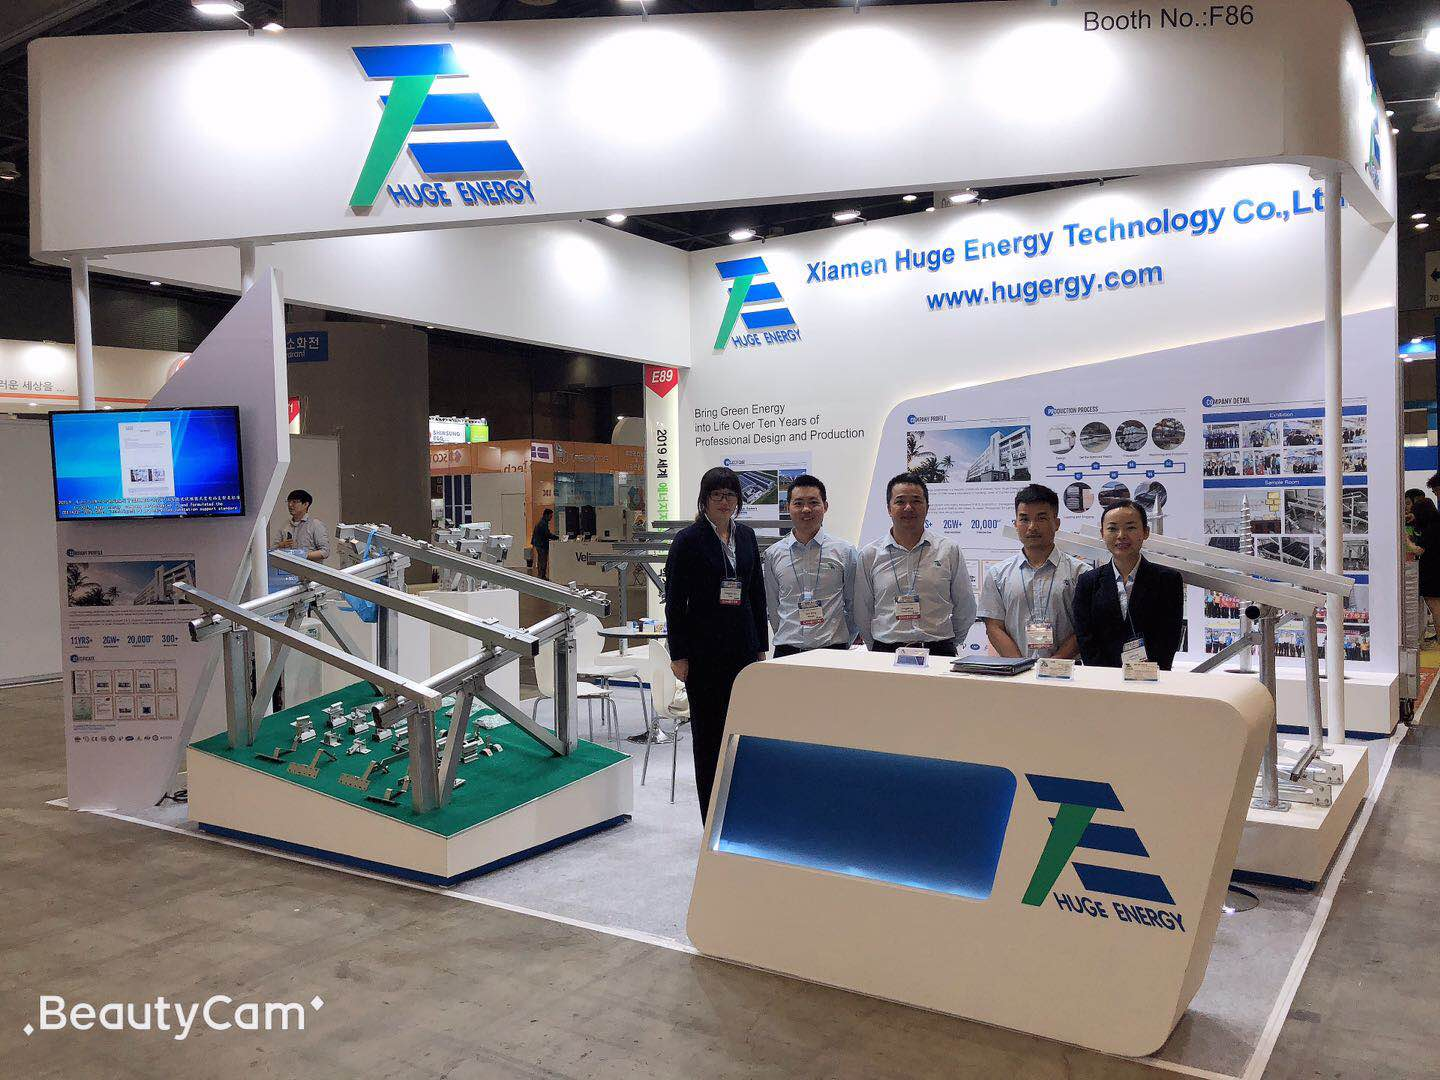 solar energy exhibition at the KINTEX Pavilion in Gaoyang, Korea on June 19-21, 2019